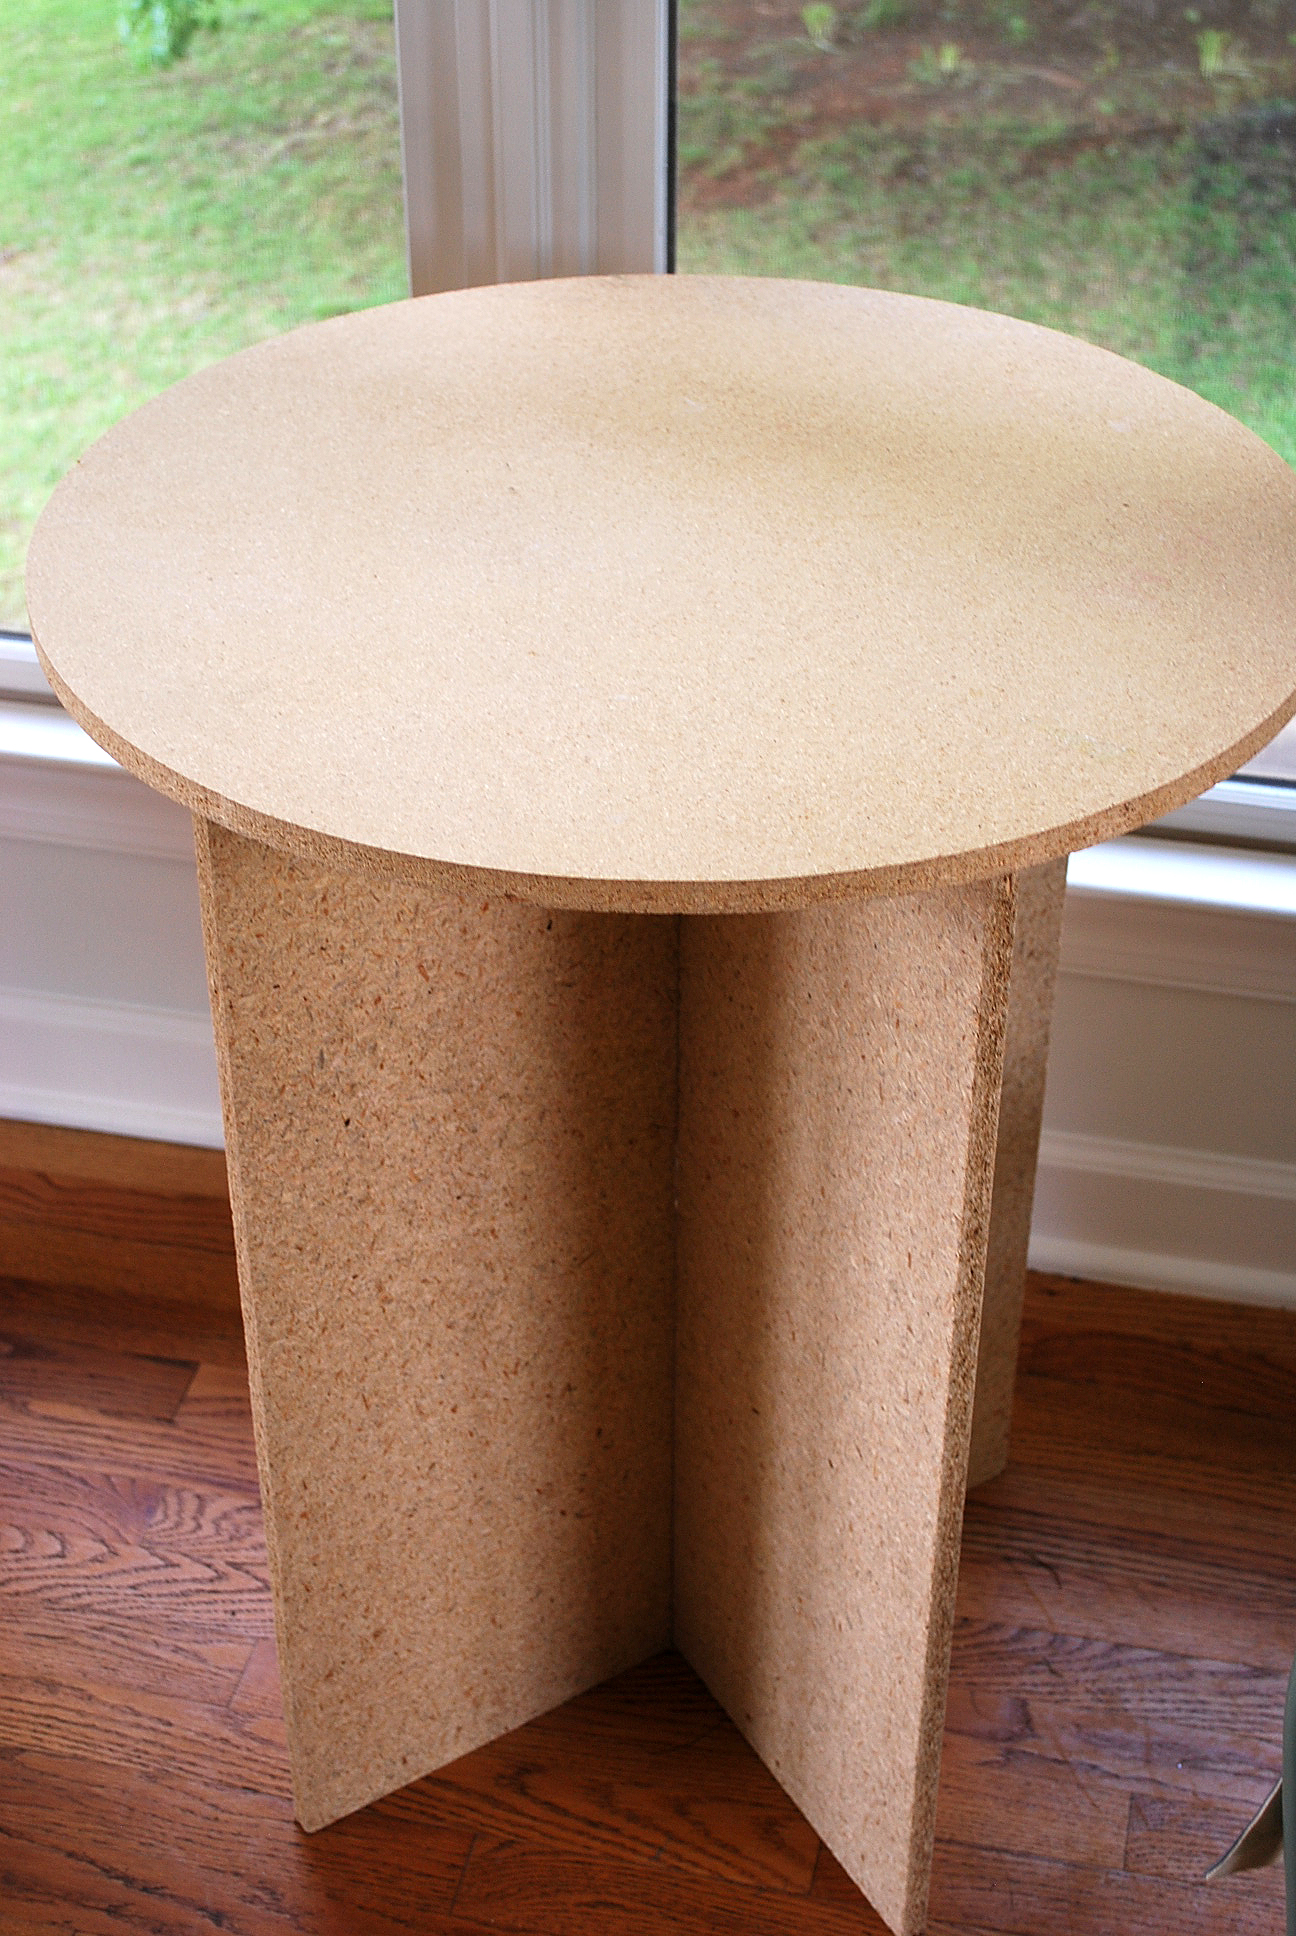 Round Particle Board Table Designs